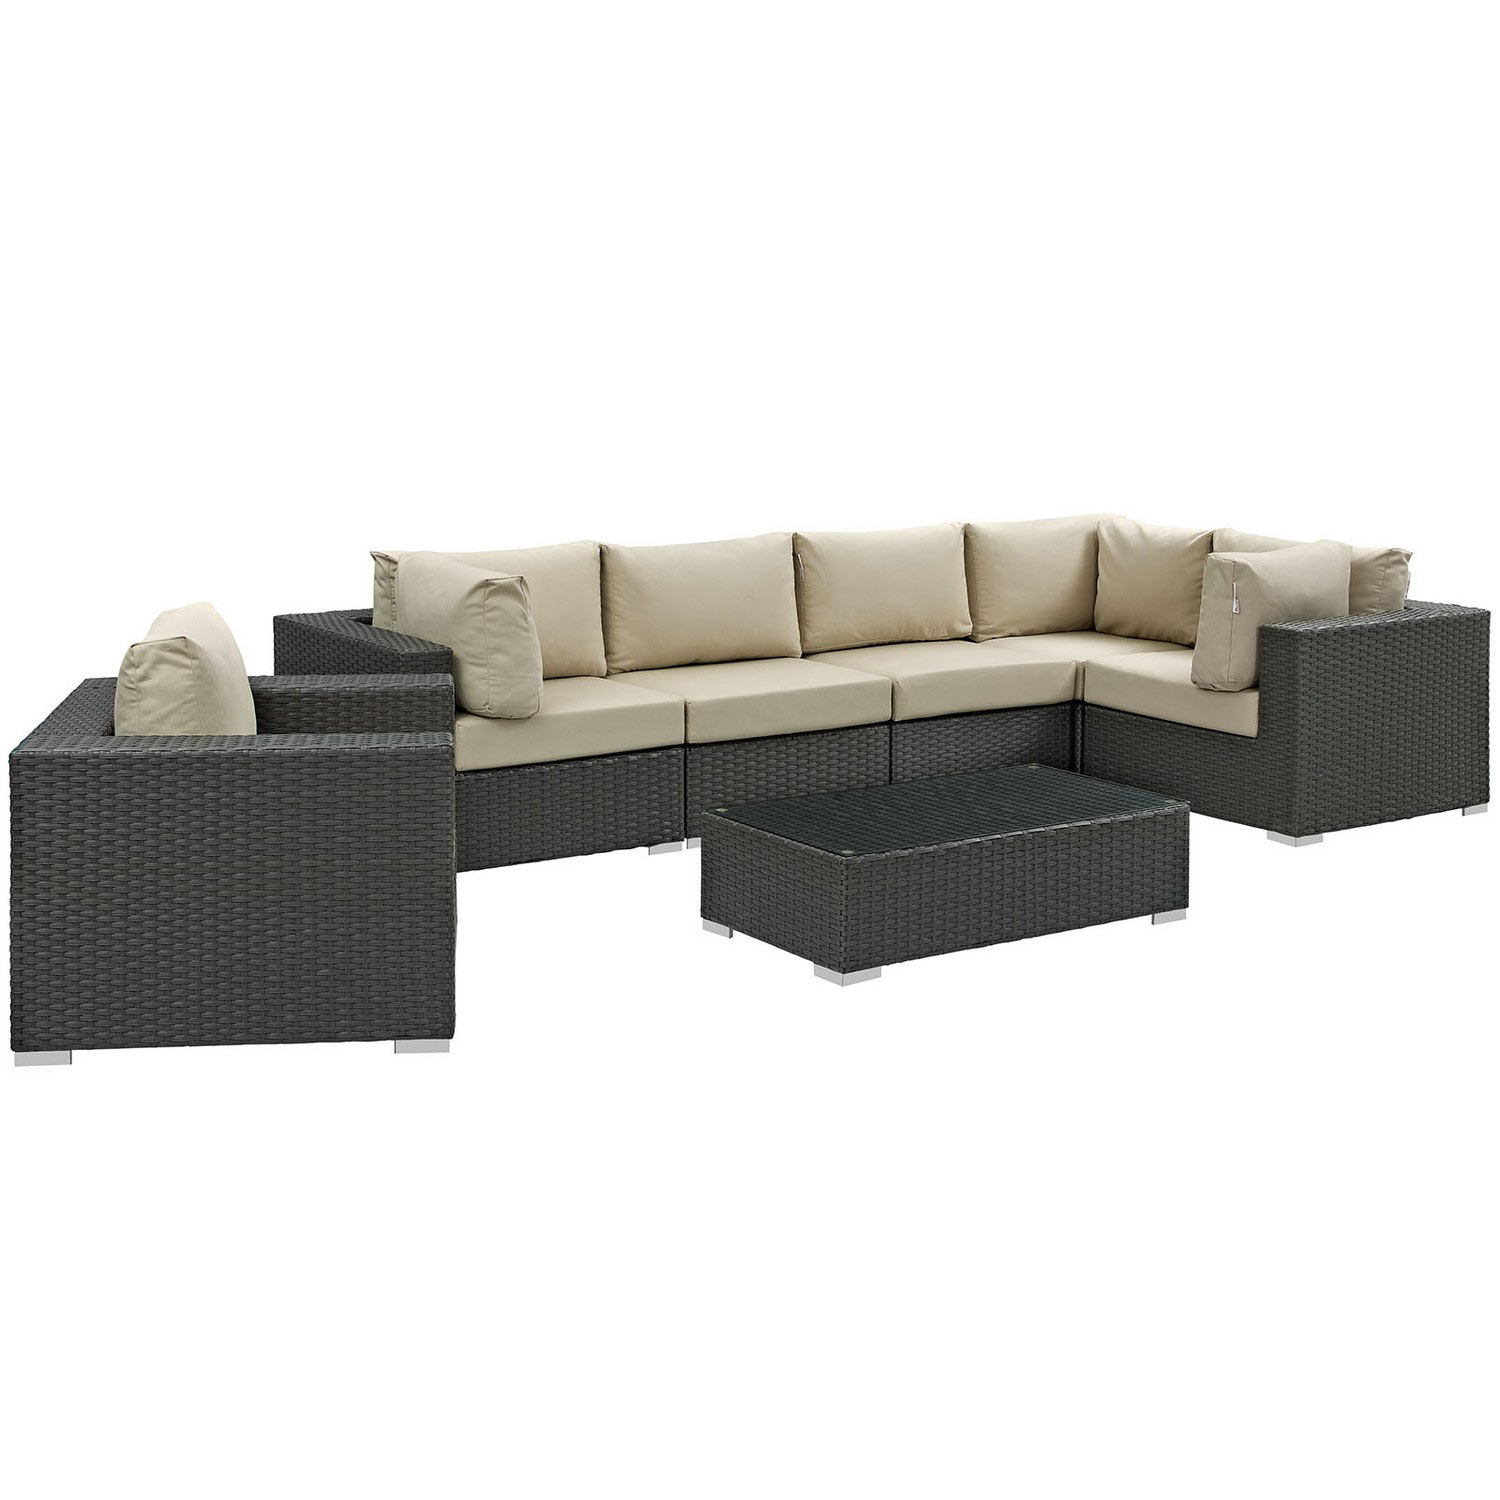 Modway Sojourn 7 Piece Outdoor Patio Sunbrella Sectional Set - Canvas Antique Beige